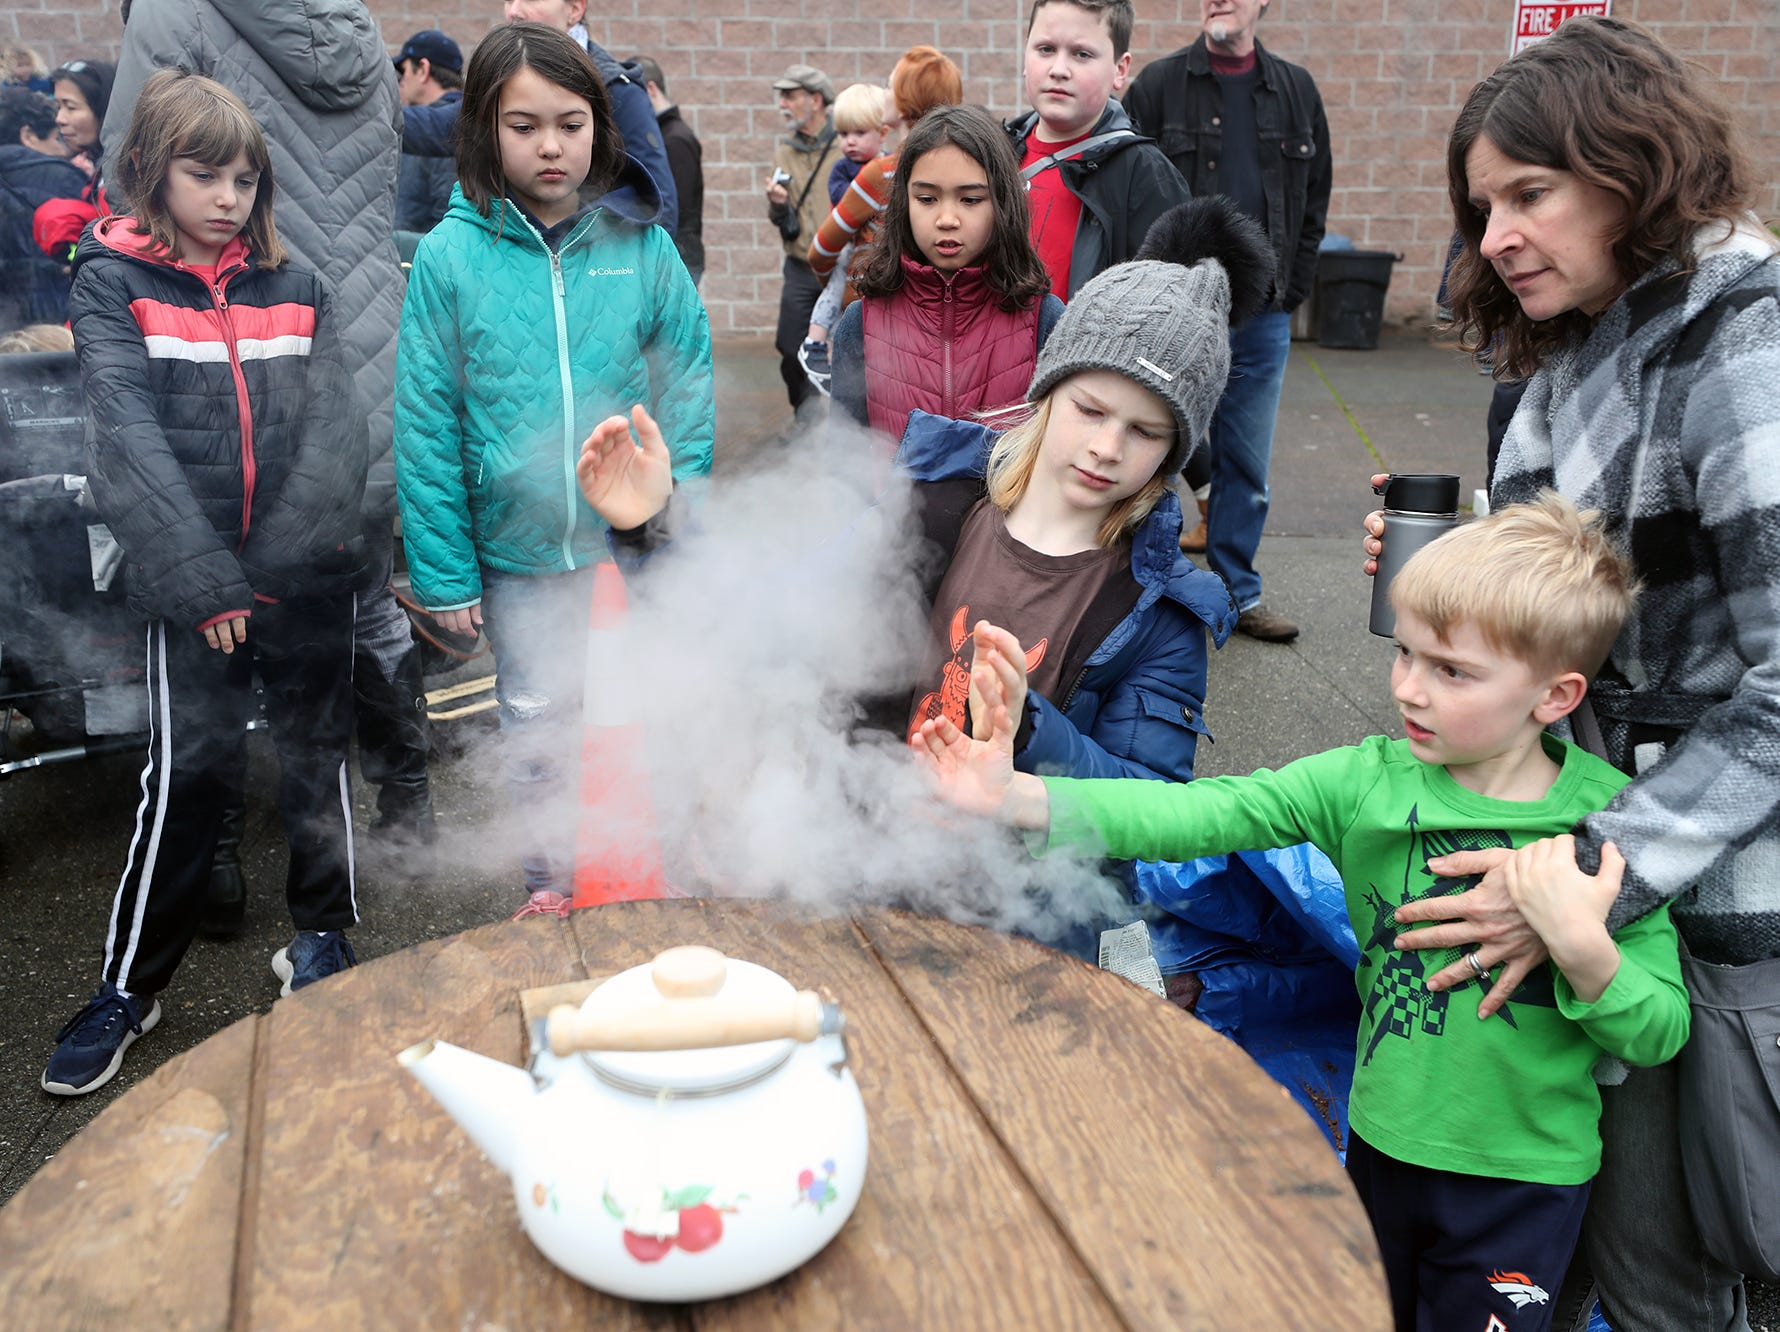 The 30th anniversary of Bainbridge Island's Japanese-American Mochi Tsuki celebration was held at an new location at the Woodward Middle School on Saturday, January, 5, 2019. Mochi Tsuki is a traditional Japanese New Year's tradition of steaming rice and pounding it into a rice cake.